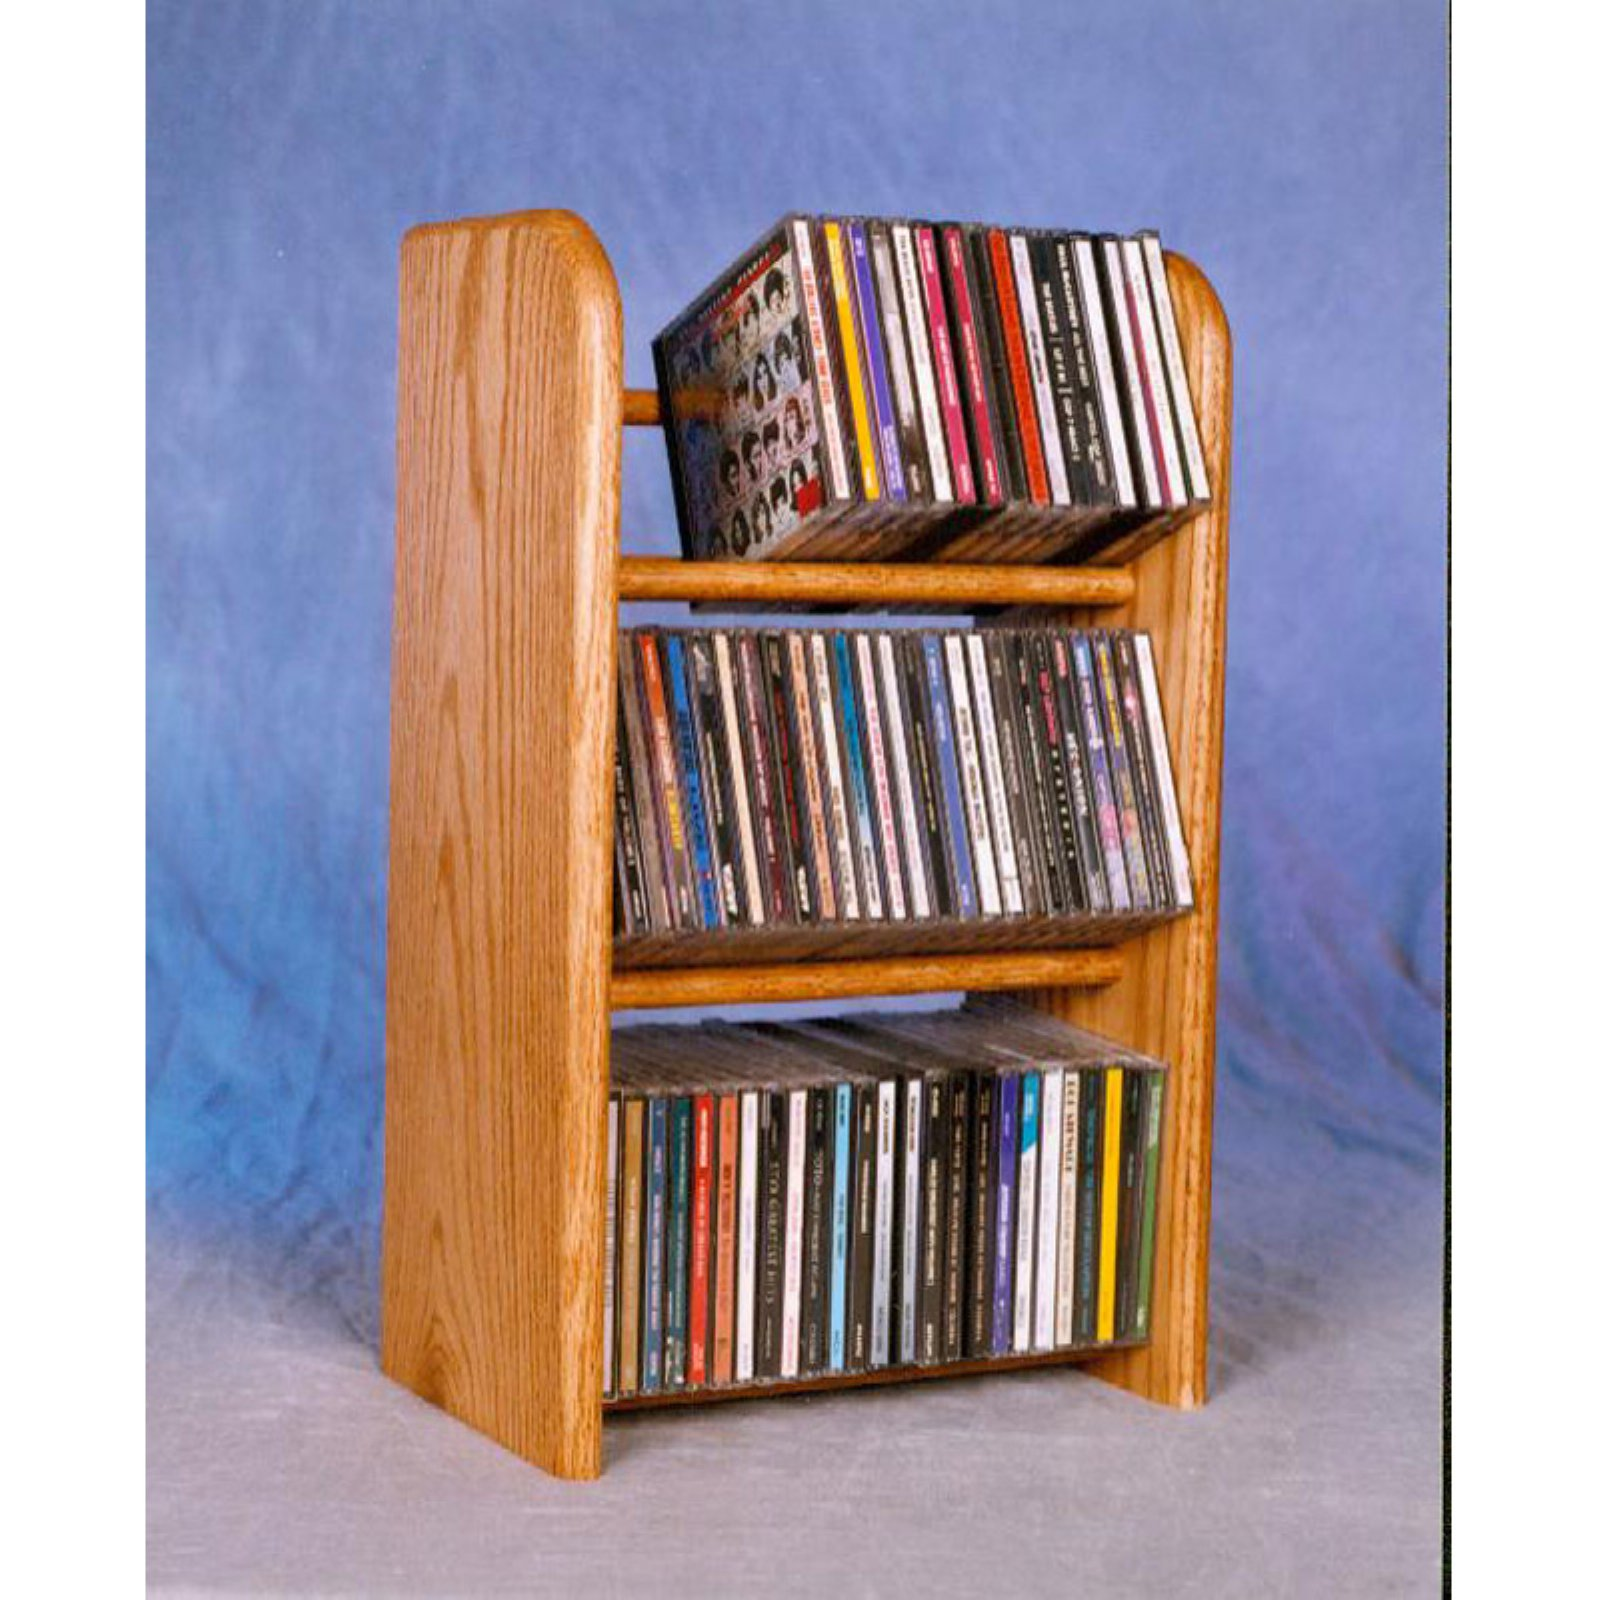 The Wood Shed Solid Oak 3 Row Dowel 78 CD Media Rack by The Wood Shed